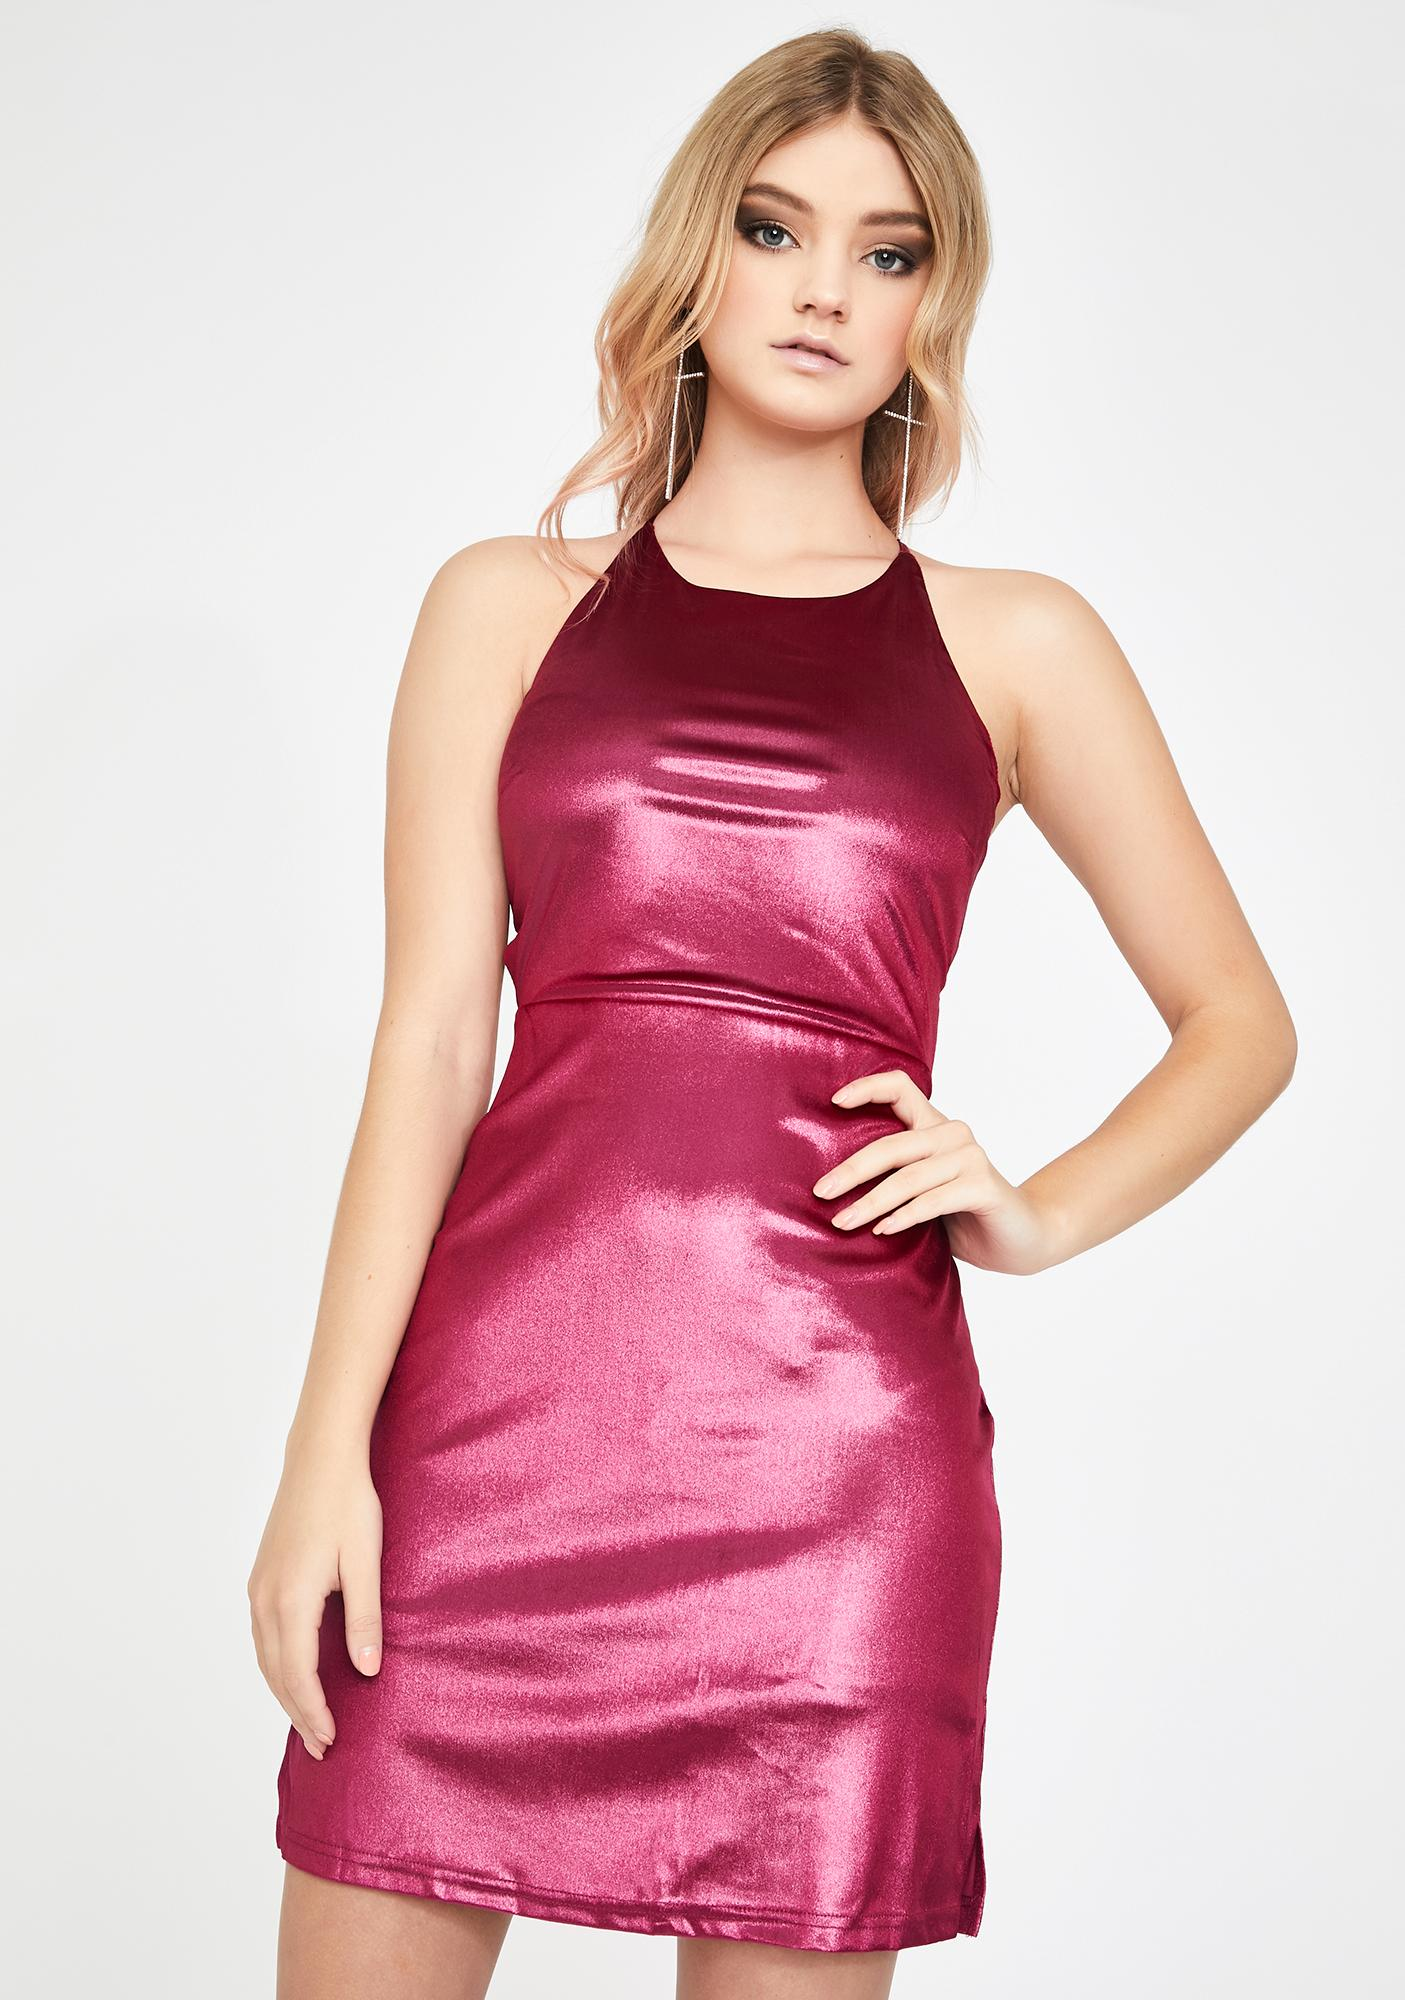 Twiin Hyper Mini Dress